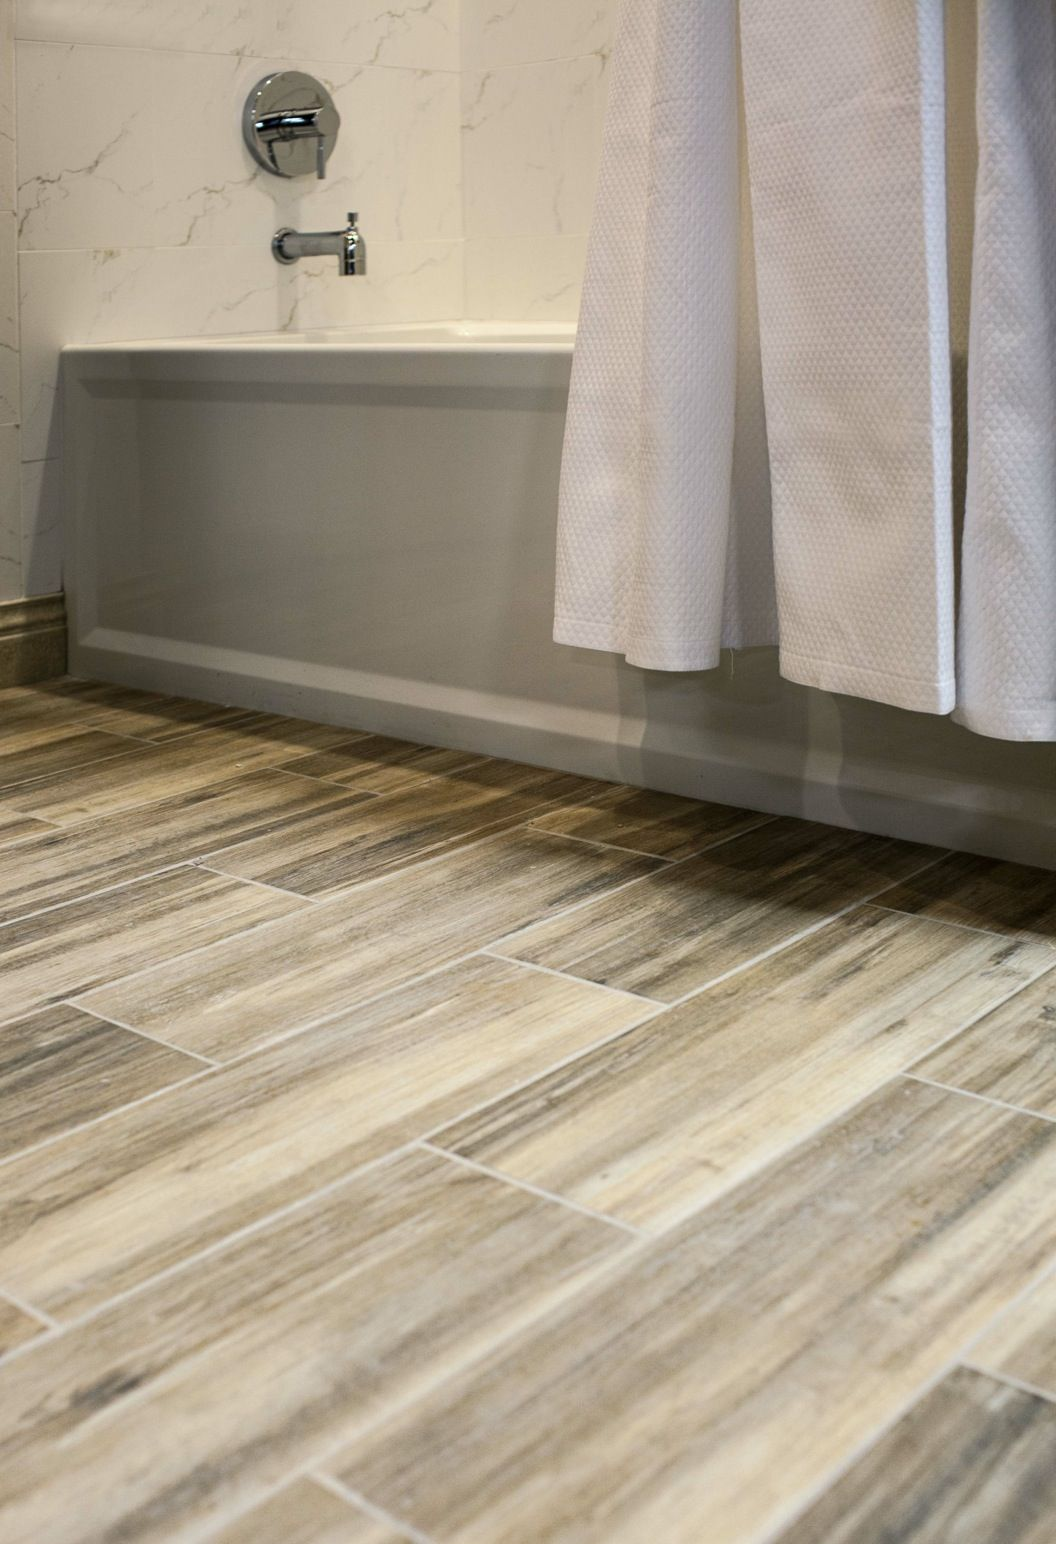 faux wood ceramic tile in the bathroom. easy to clean and still